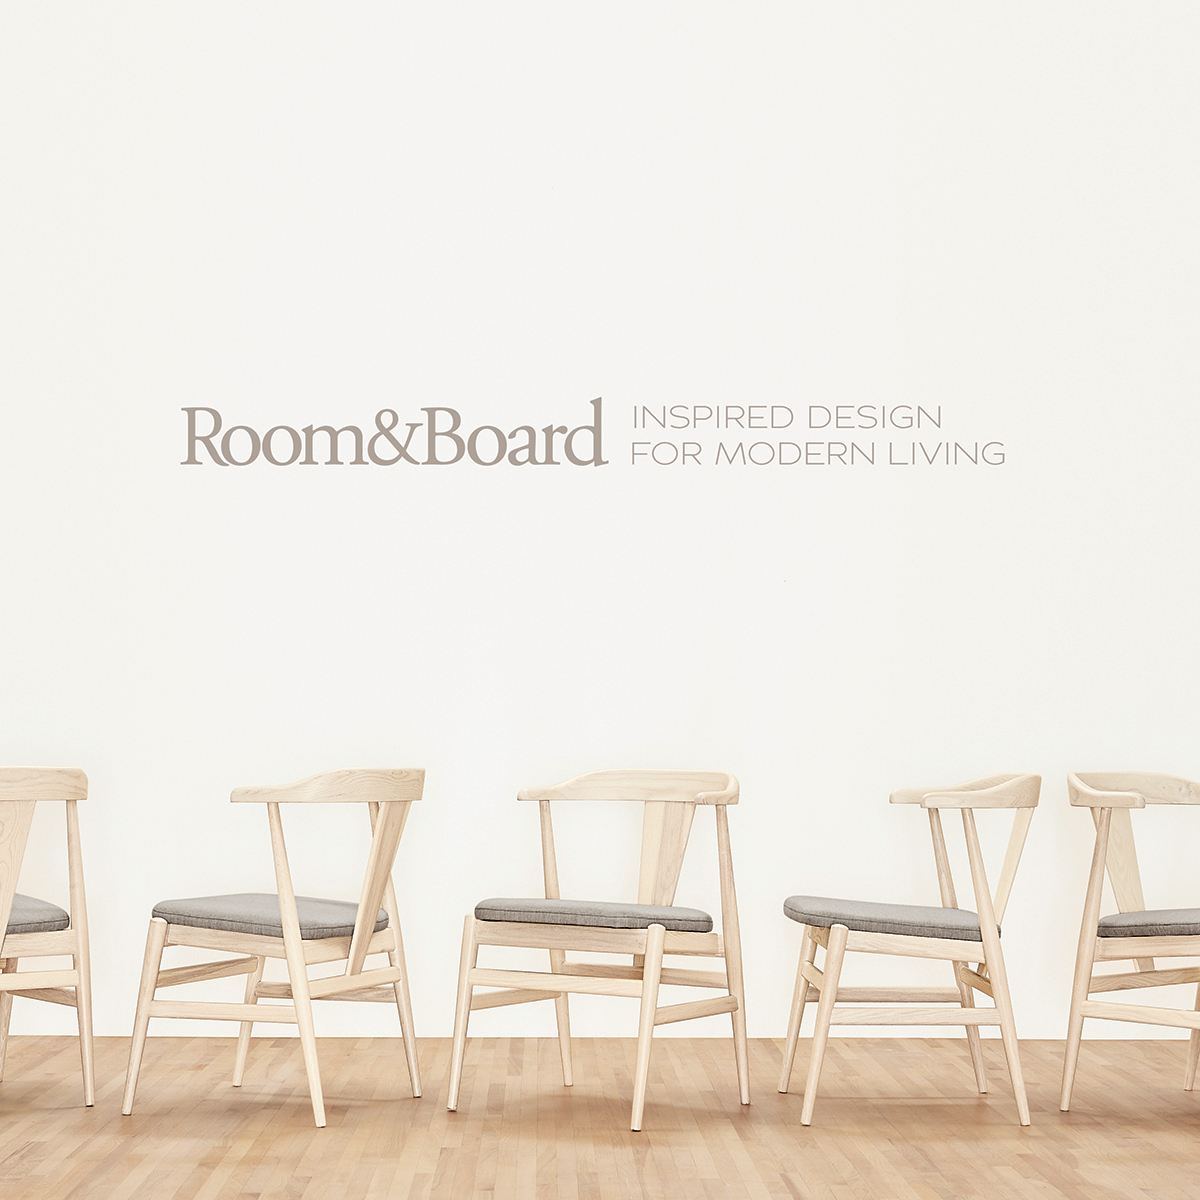 Room & Board - Atlanta, GA - Furniture Stores